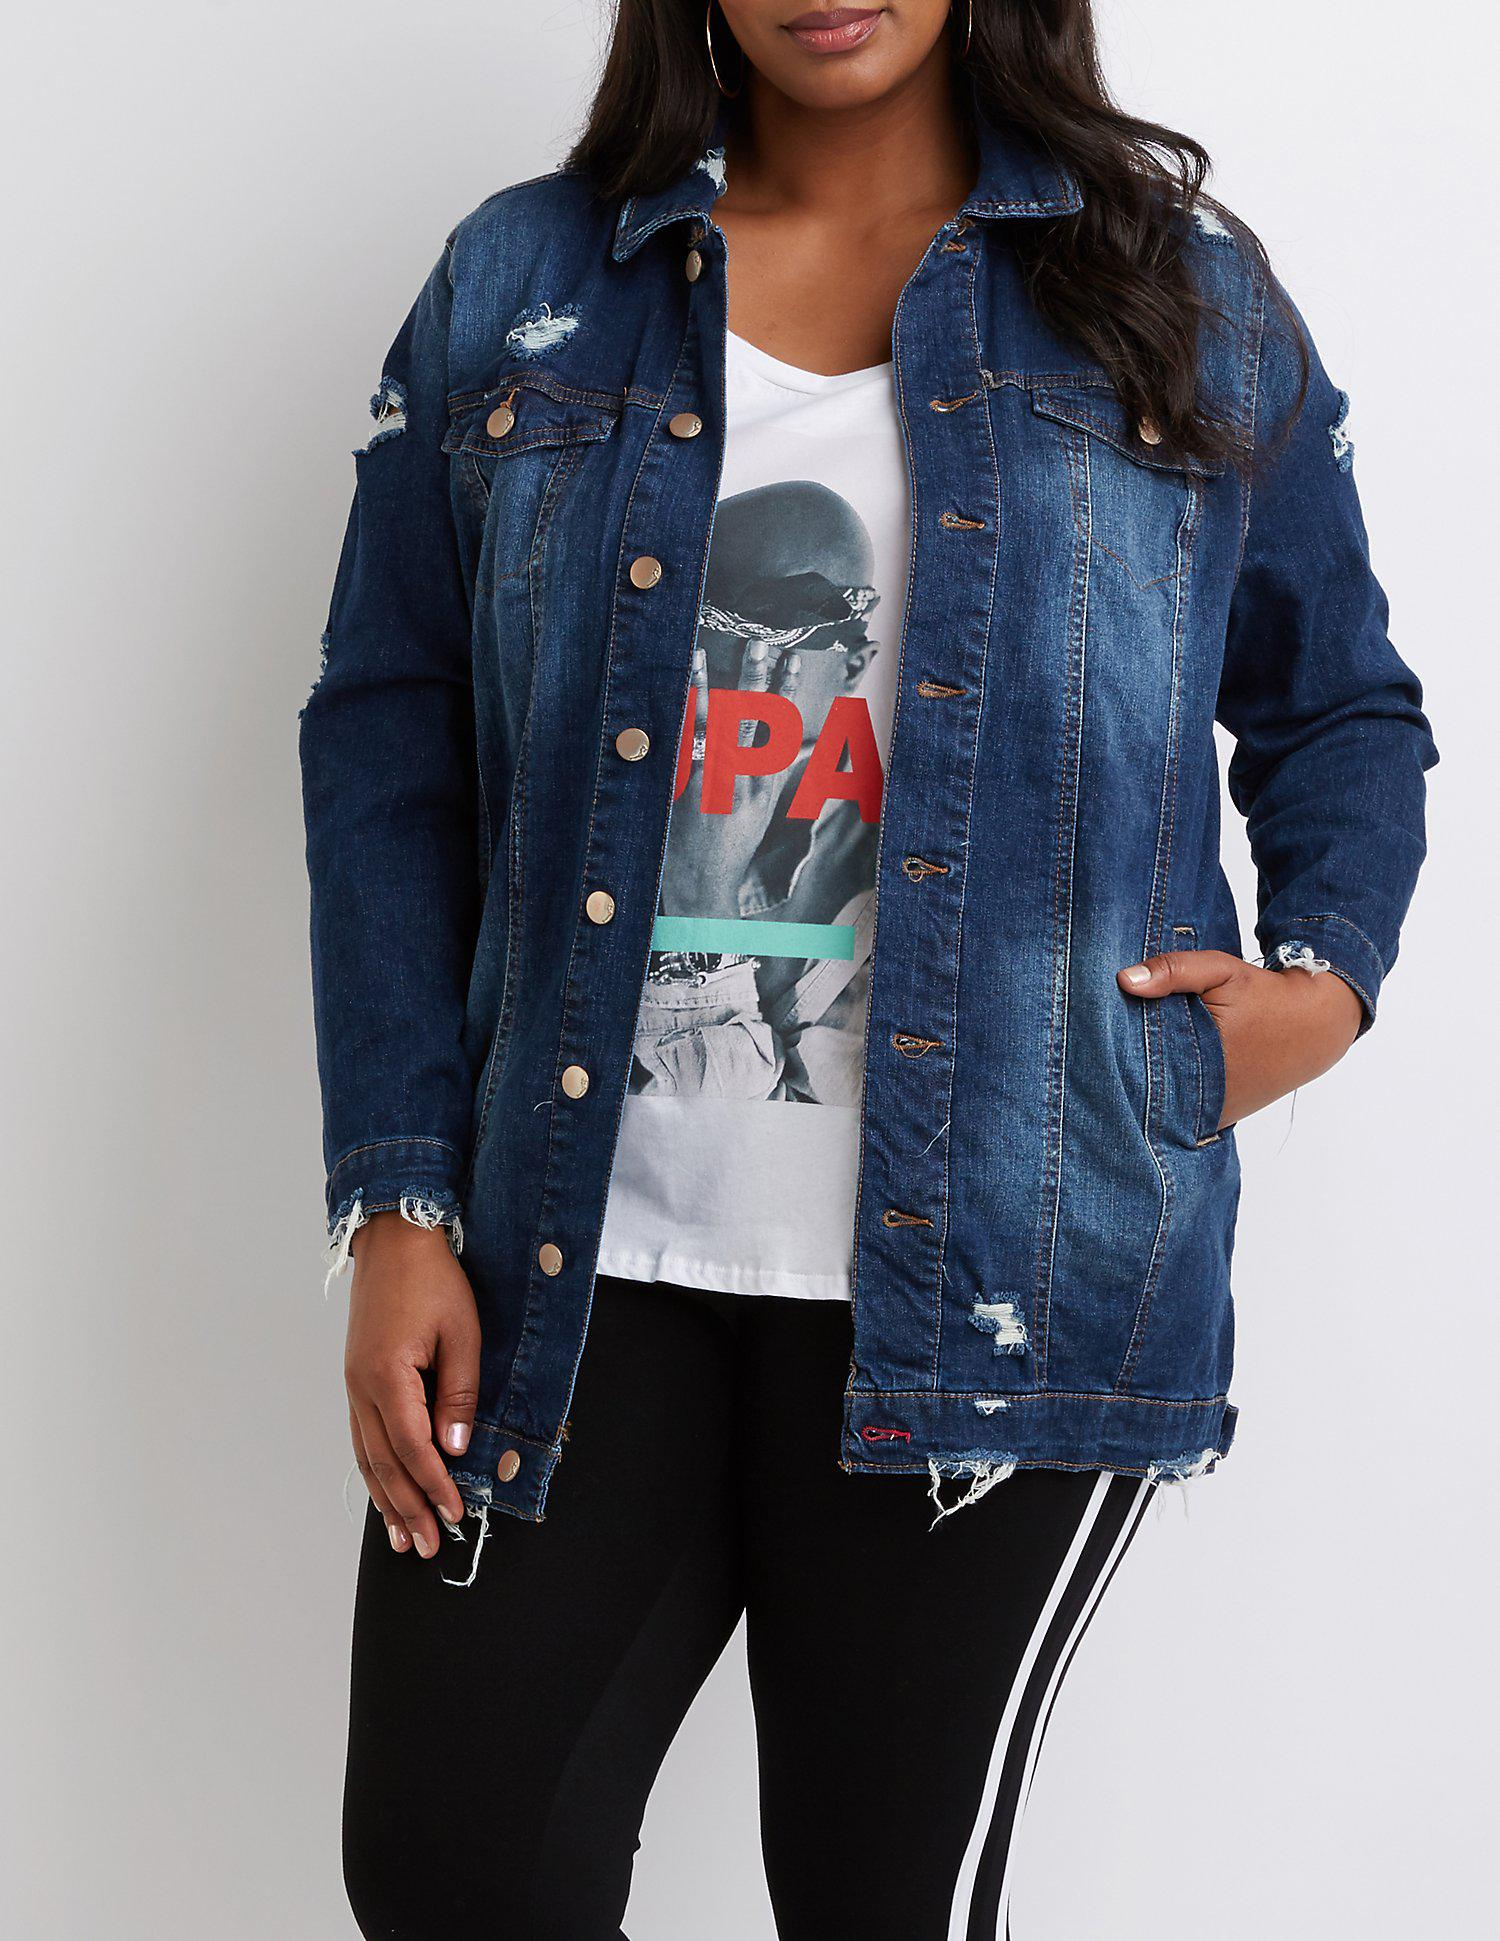 06482dee1c2c1 Lyst - Charlotte Russe Plus Size Destroyed Denim Jacket in Blue